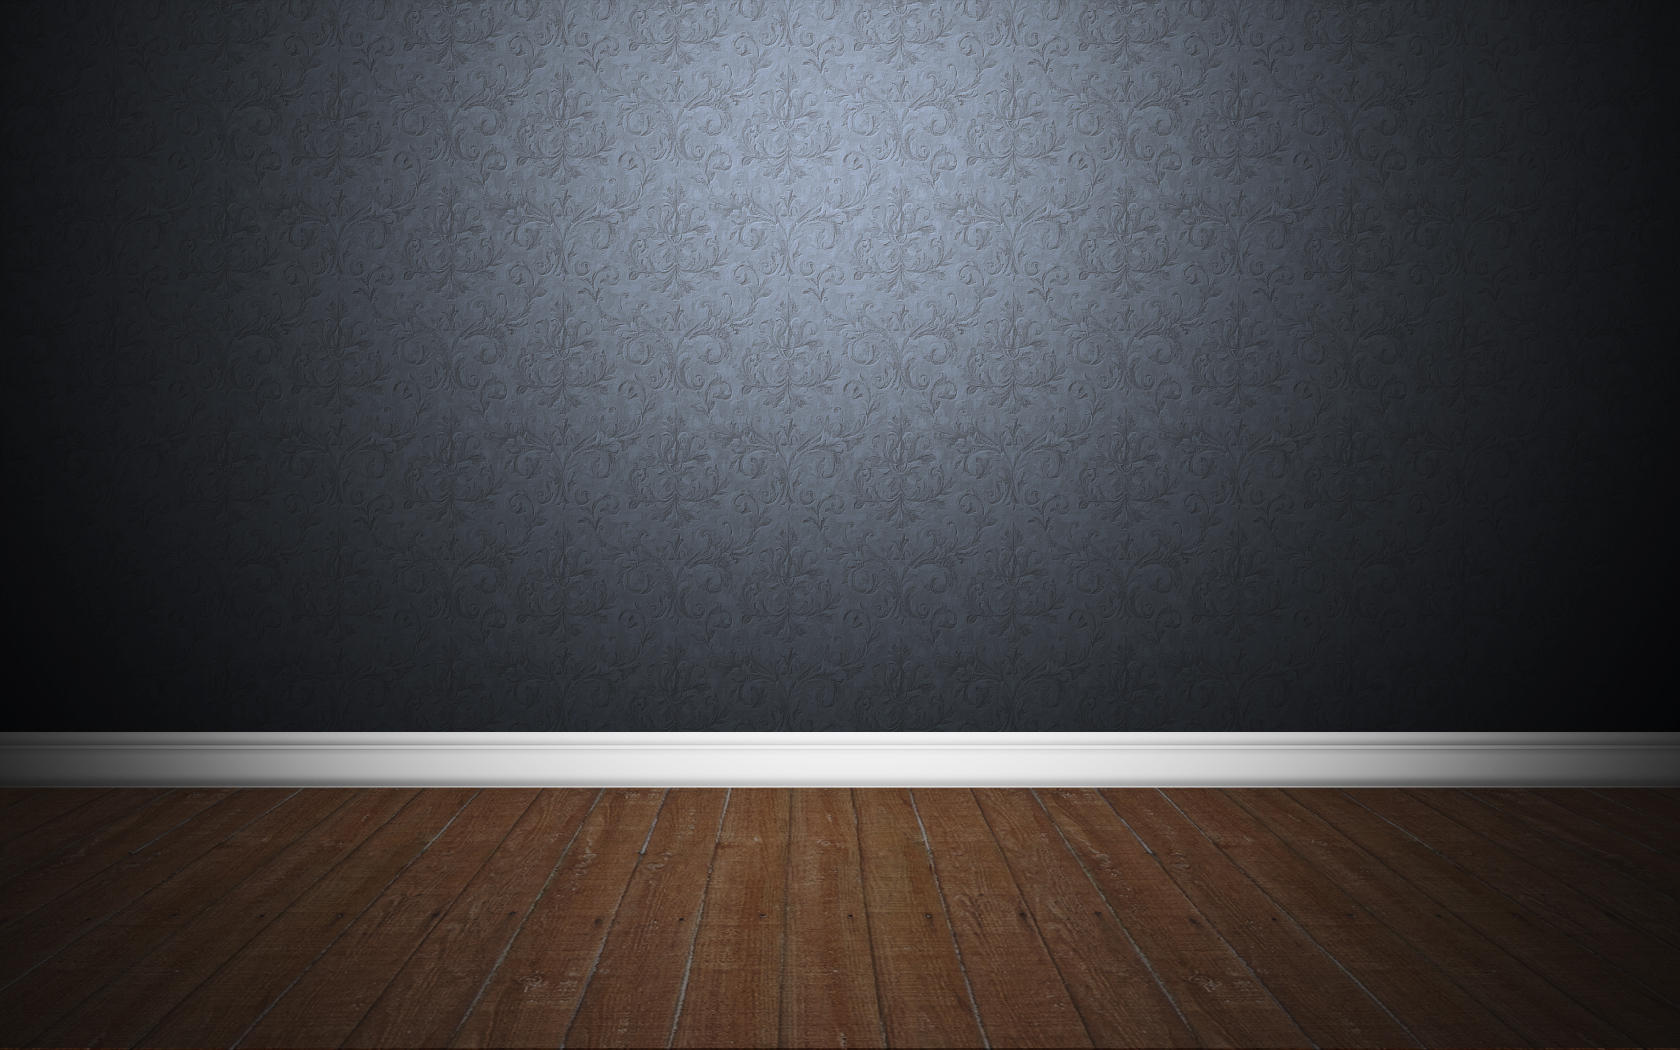 Room free psd by 3dericdesign on deviantart for Room free